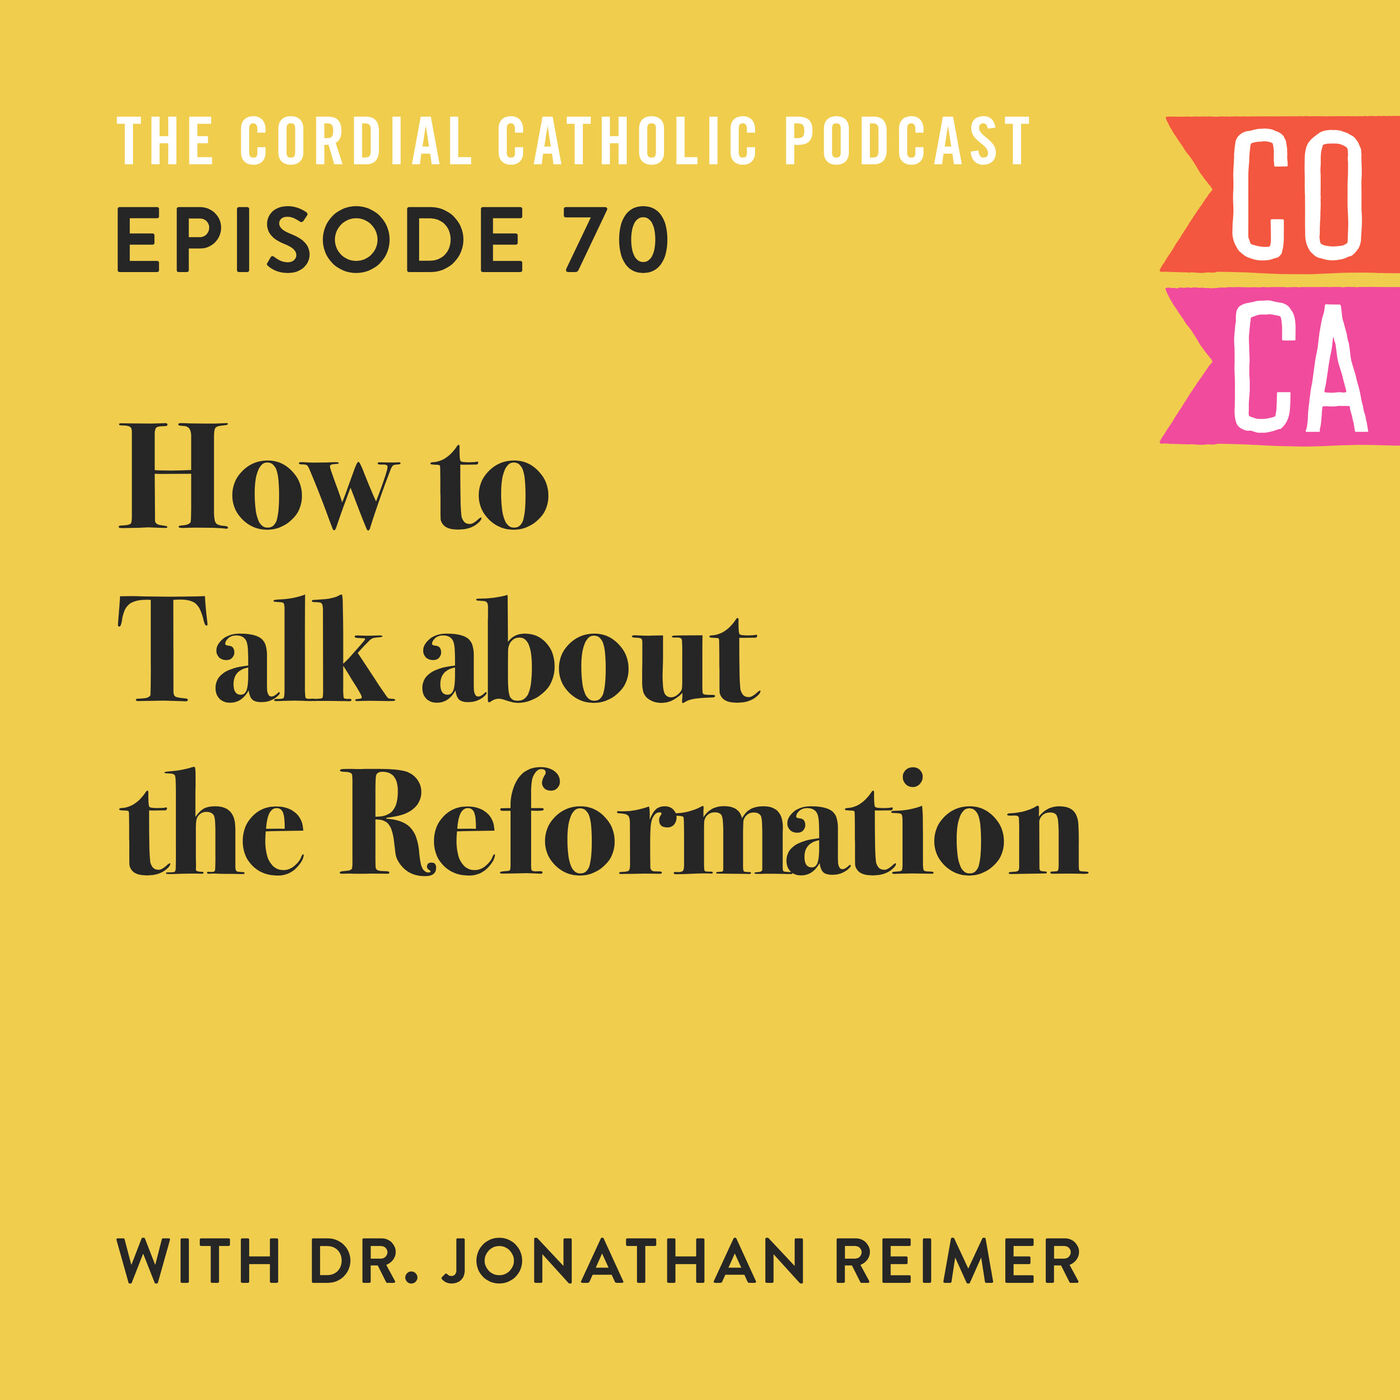 070: How to Talk about the Reformation (w/ Dr. Jonathan Reimer)